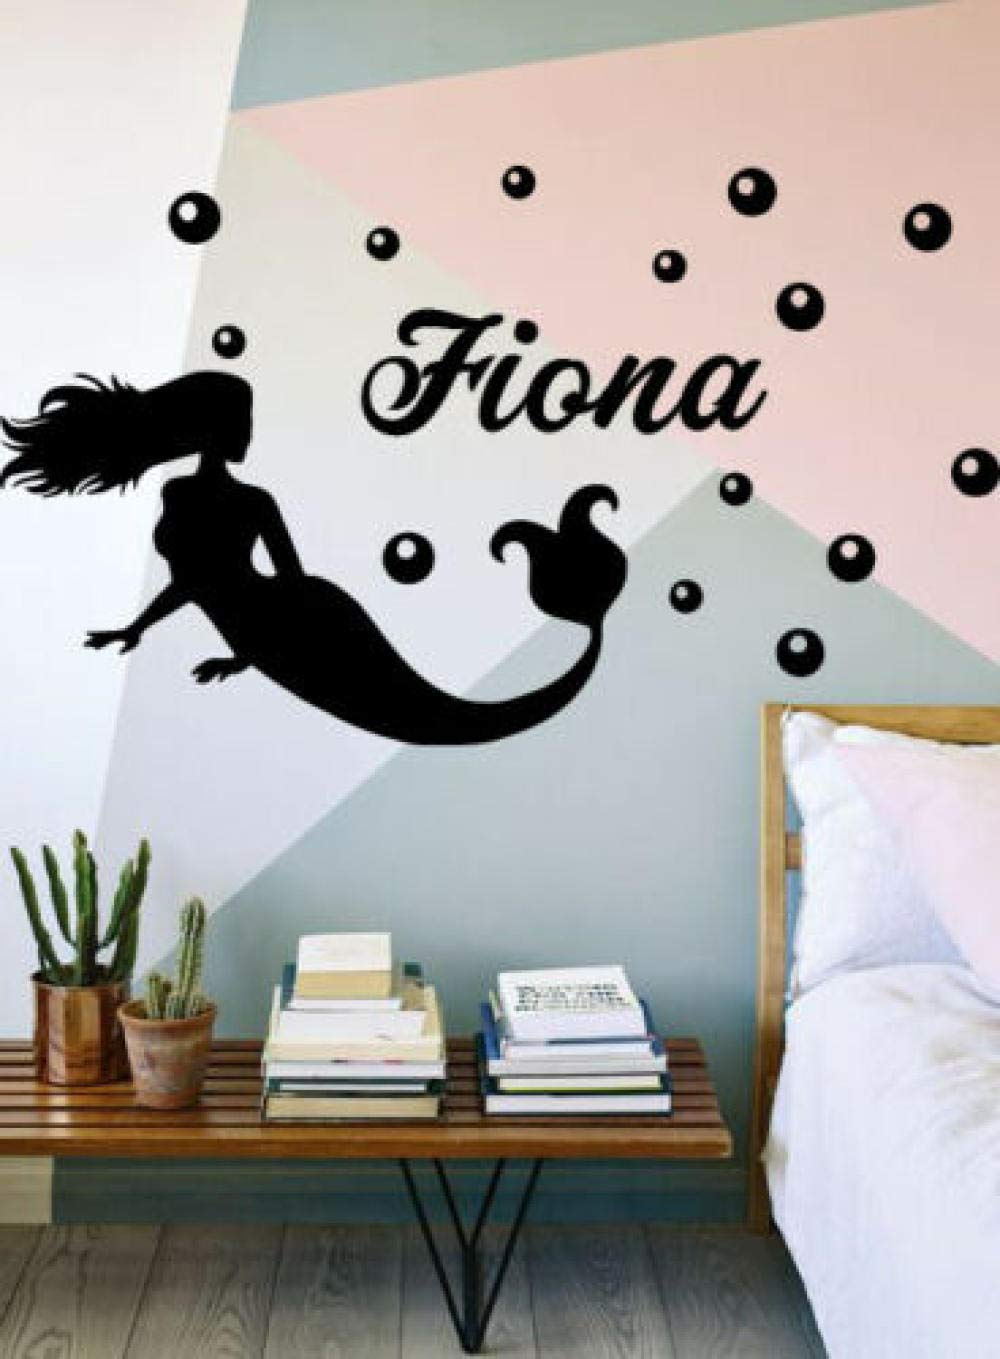 DDSYJ Nashville-Davidson Mall 3D Wall Stickers Personalized Name Decal P Bombing new work Sticker Vinyl